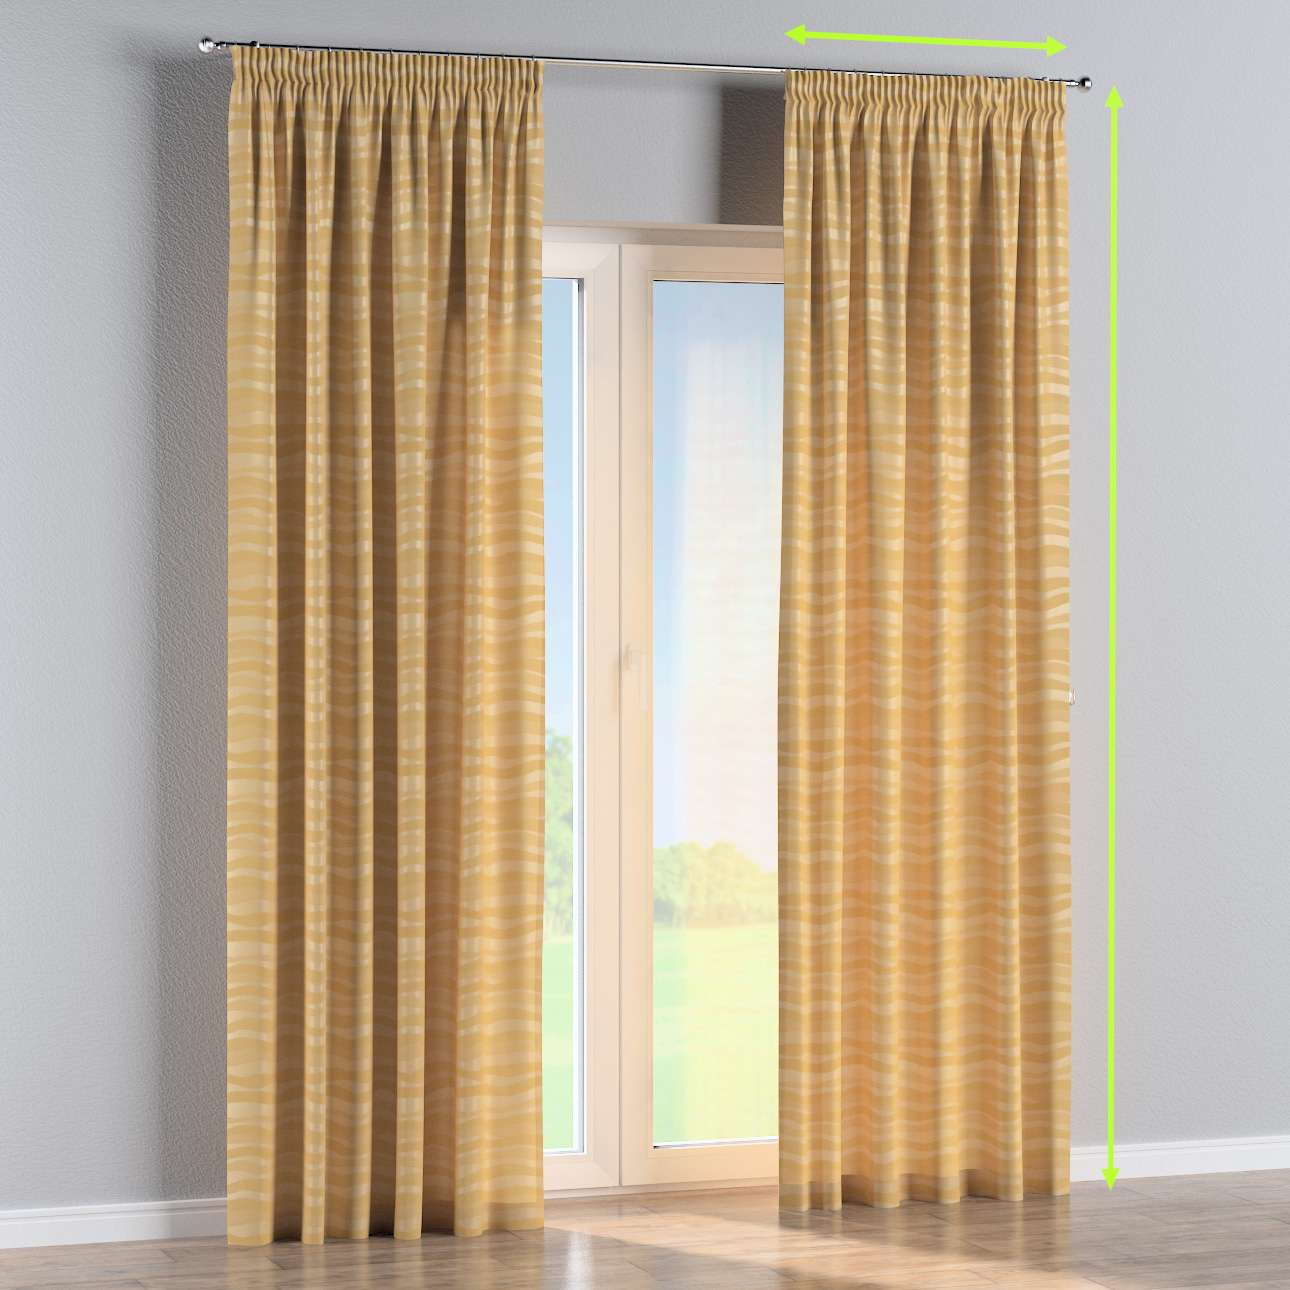 Pencil pleat curtain in collection Damasco, fabric: 141-74